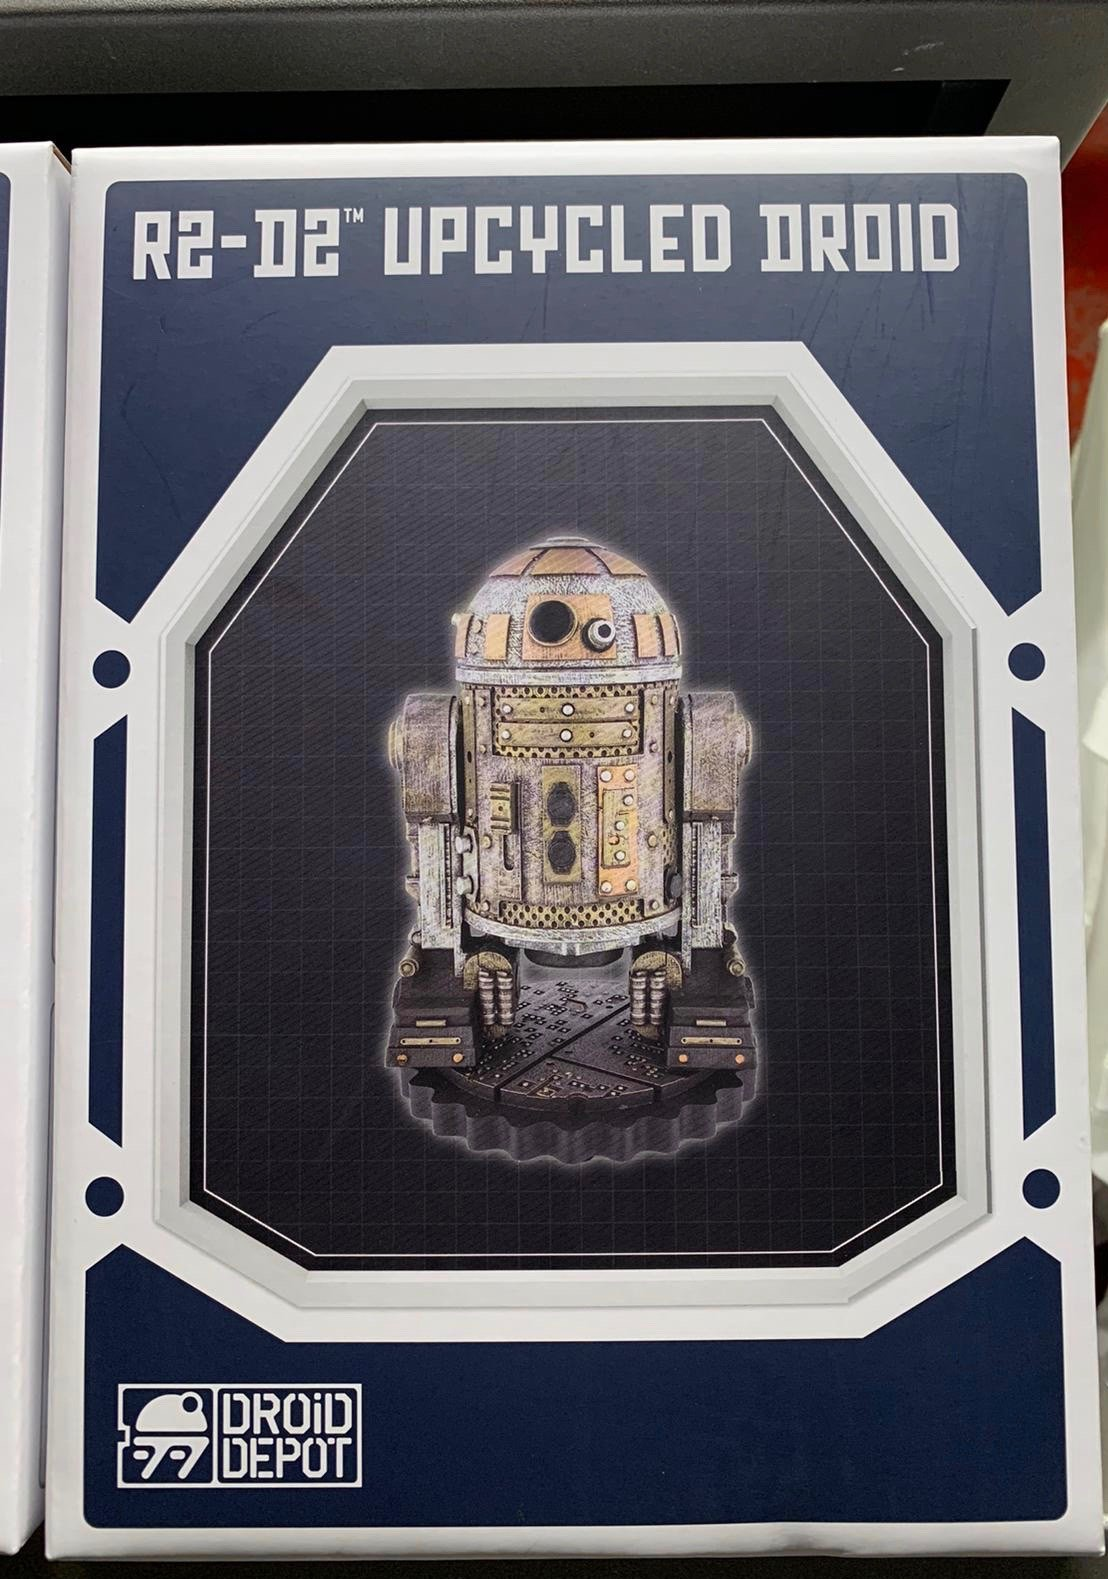 SWGE R2-D2 Upcycled Droid Depot Toy 1